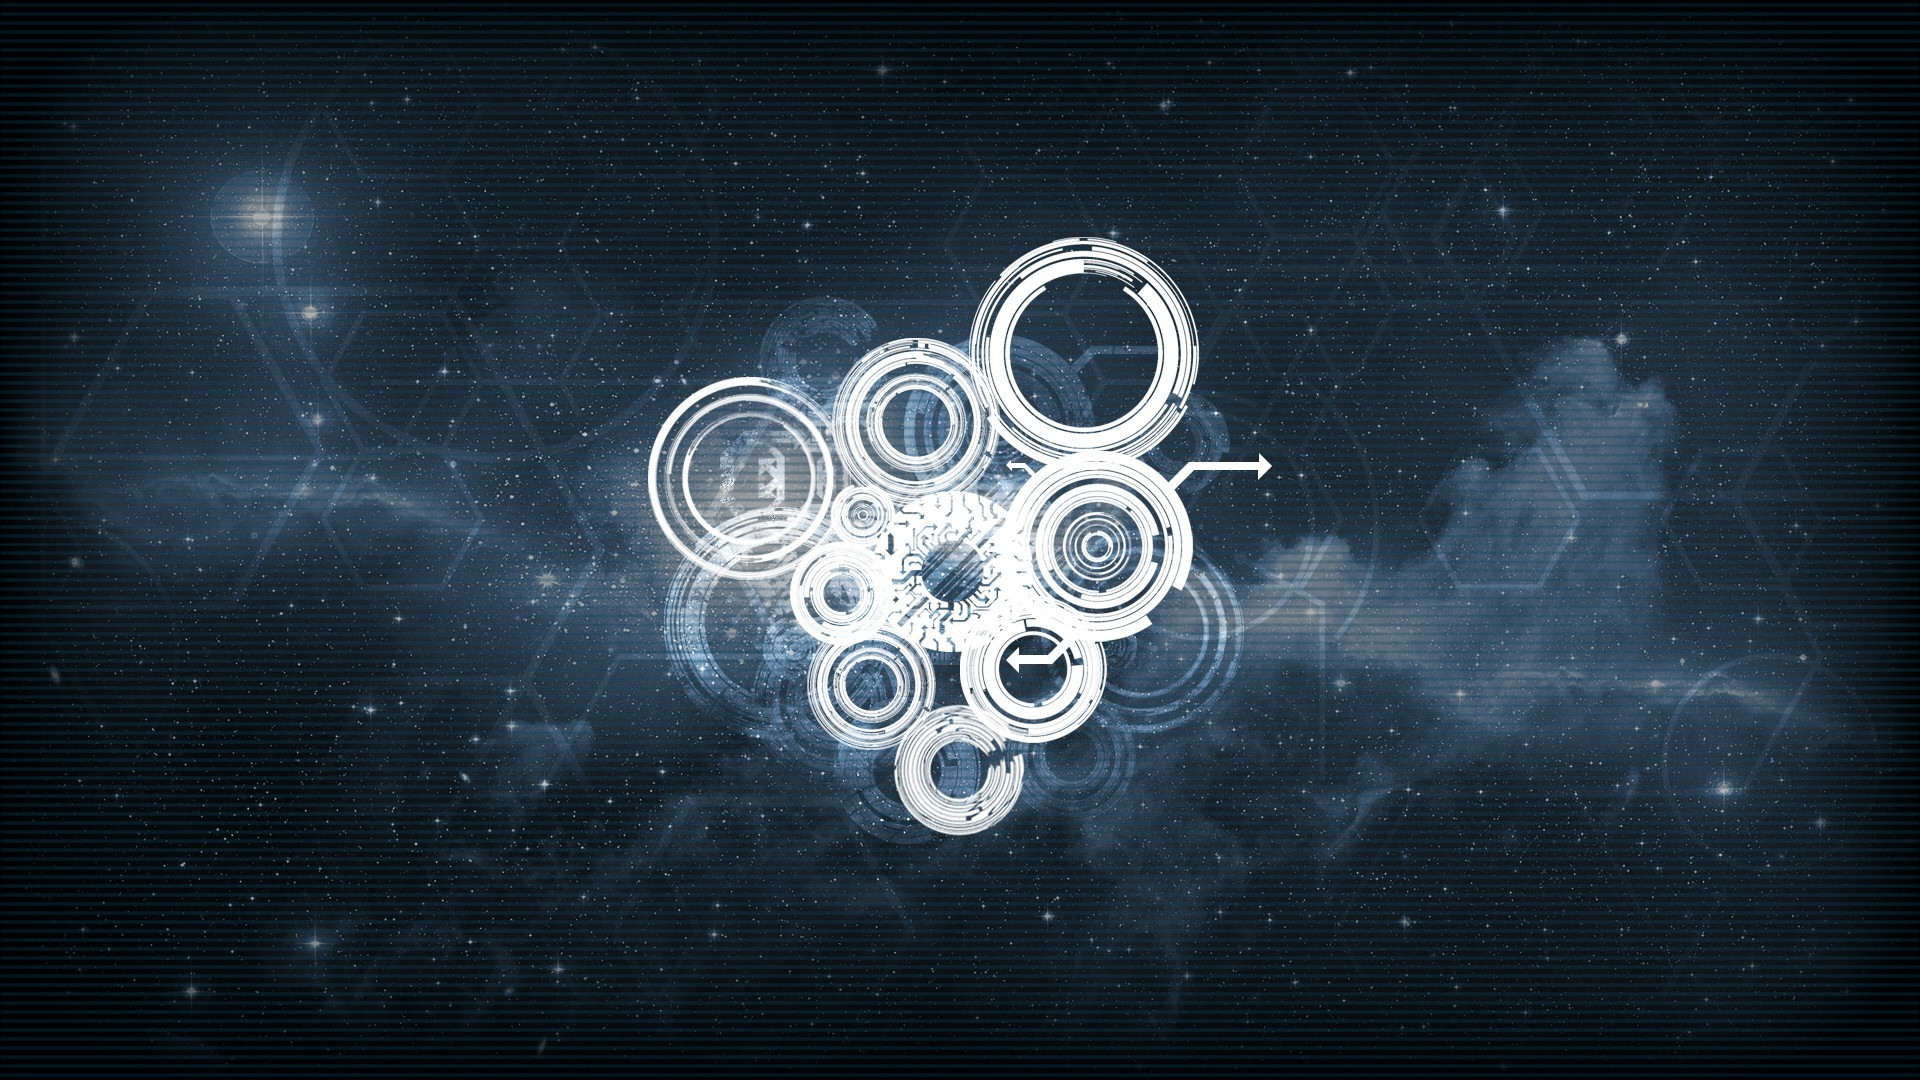 Sci Fi Abstract Wallpaper Picture   Abstract Wallpapers   Pinterest    Wallpaper pictures, Sci fi and Wallpaper